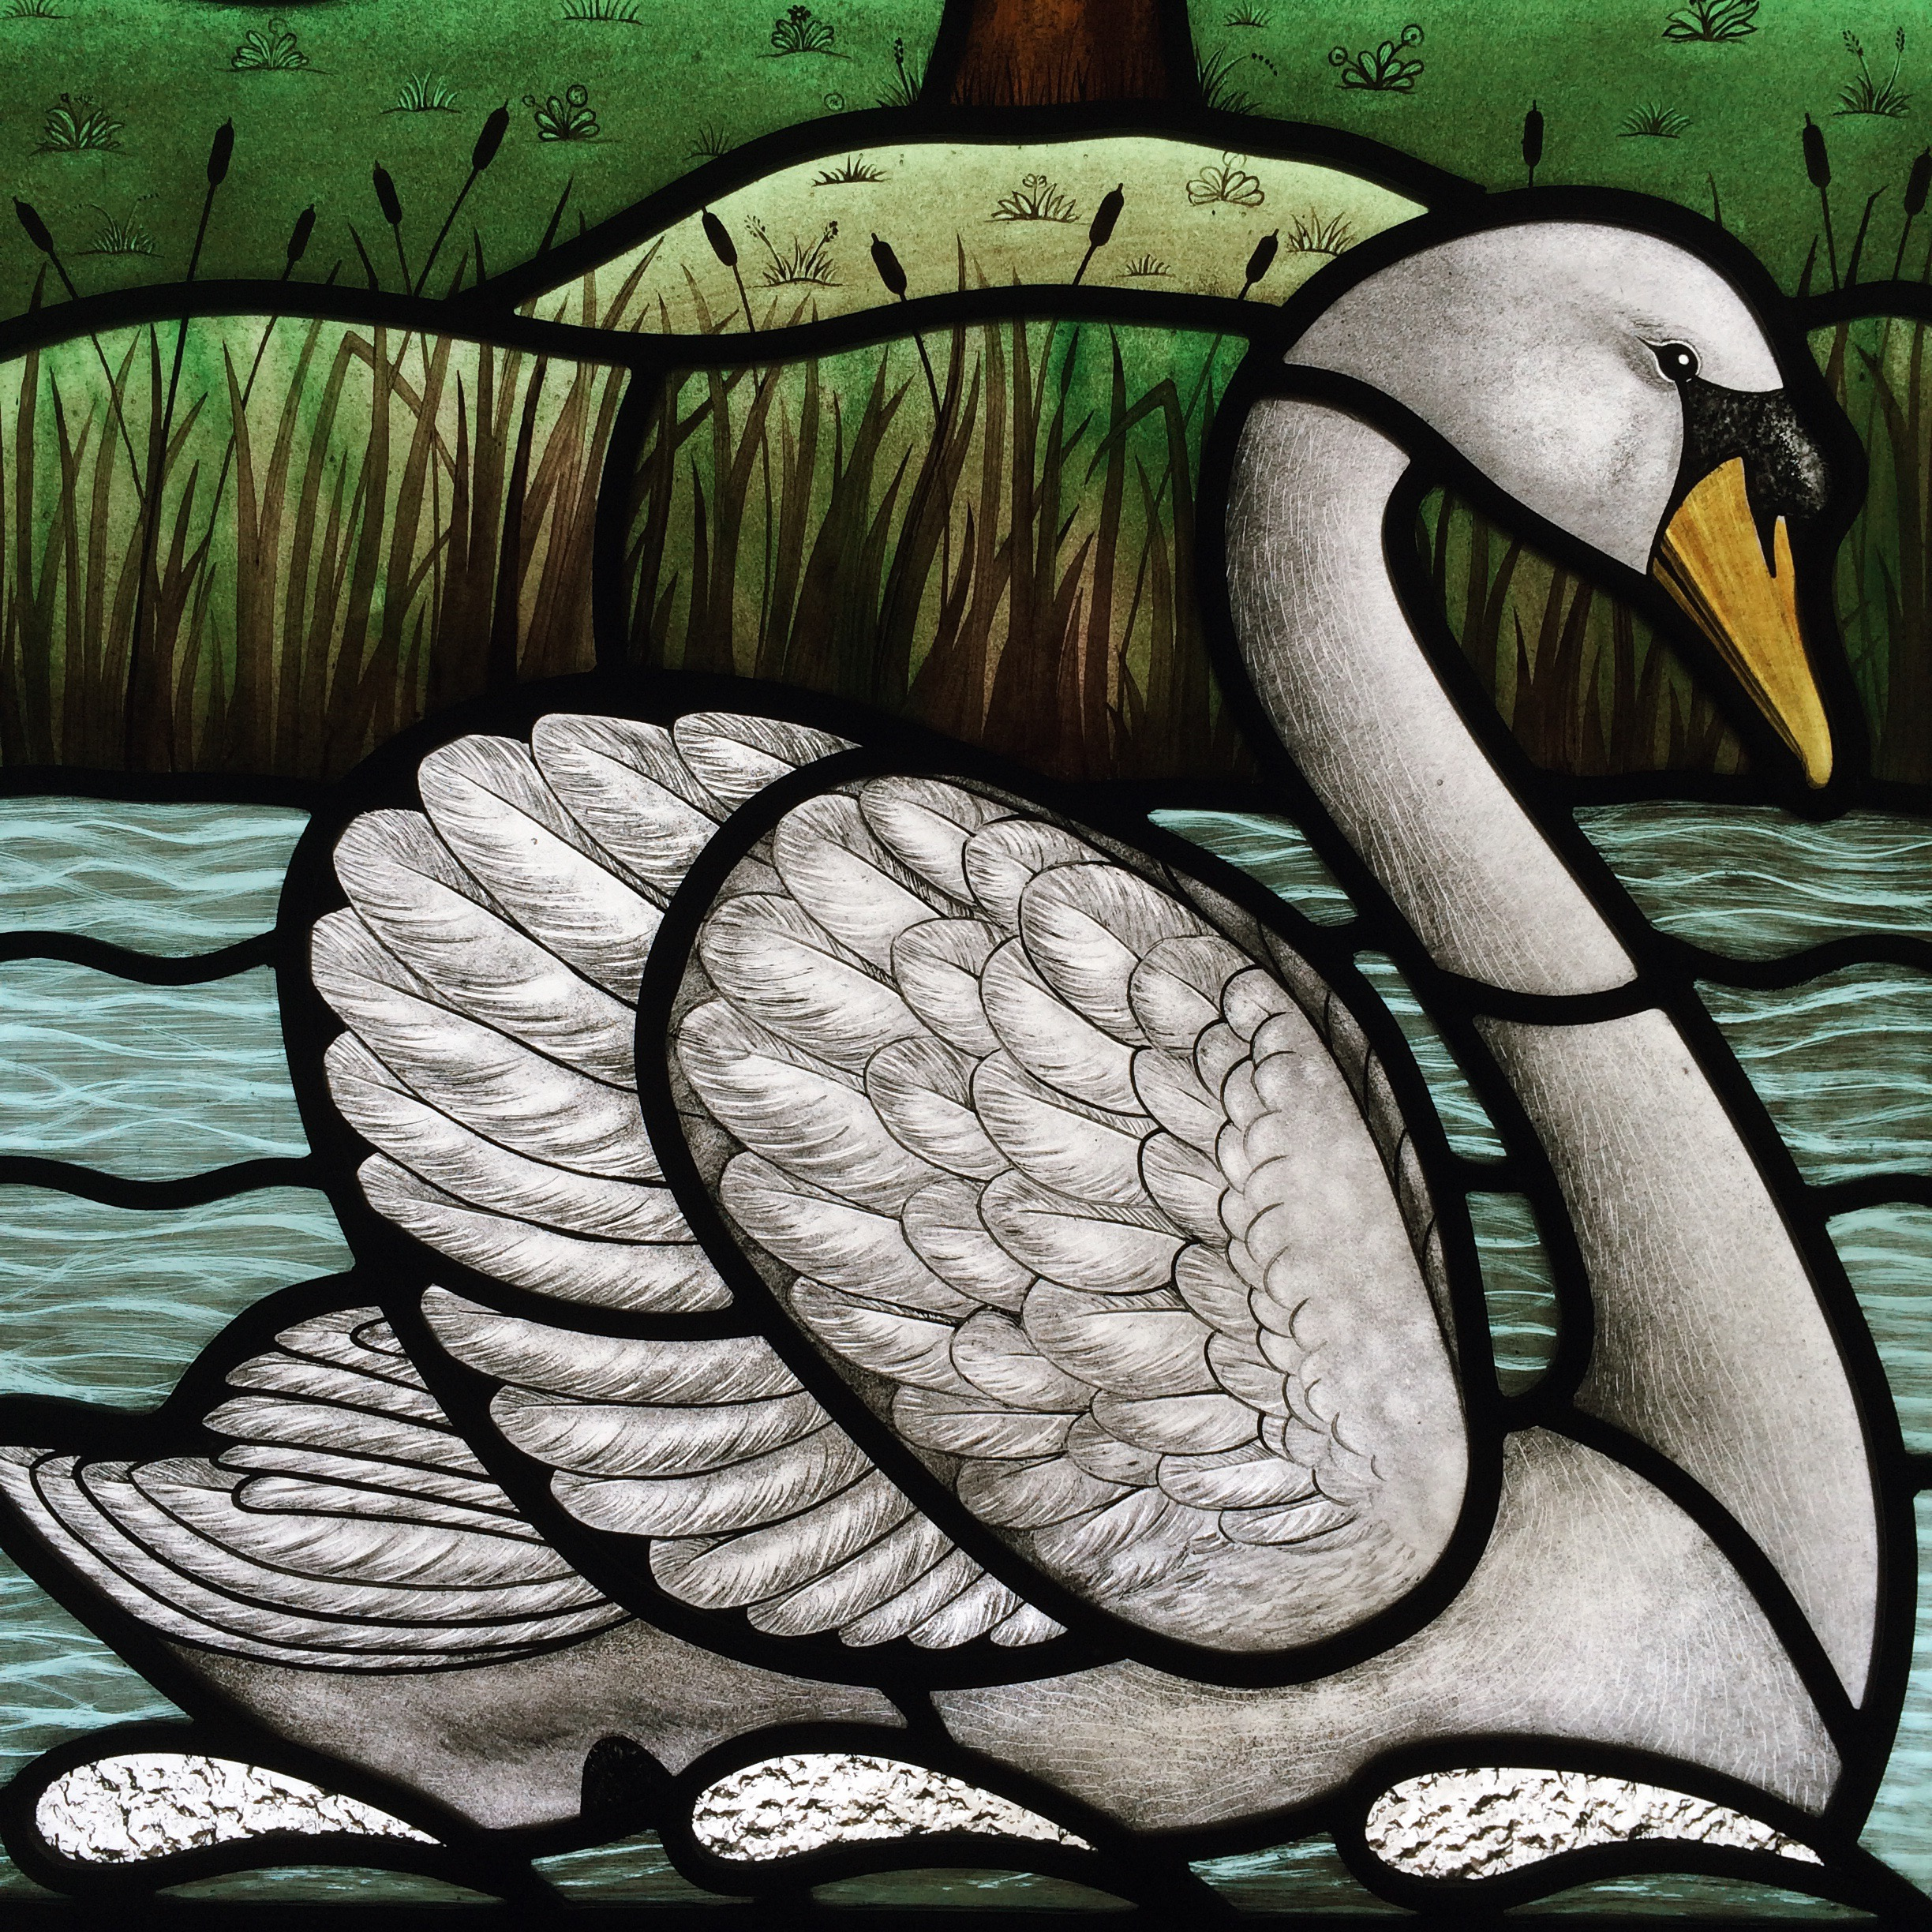 Detail of Swan and Pond Windows